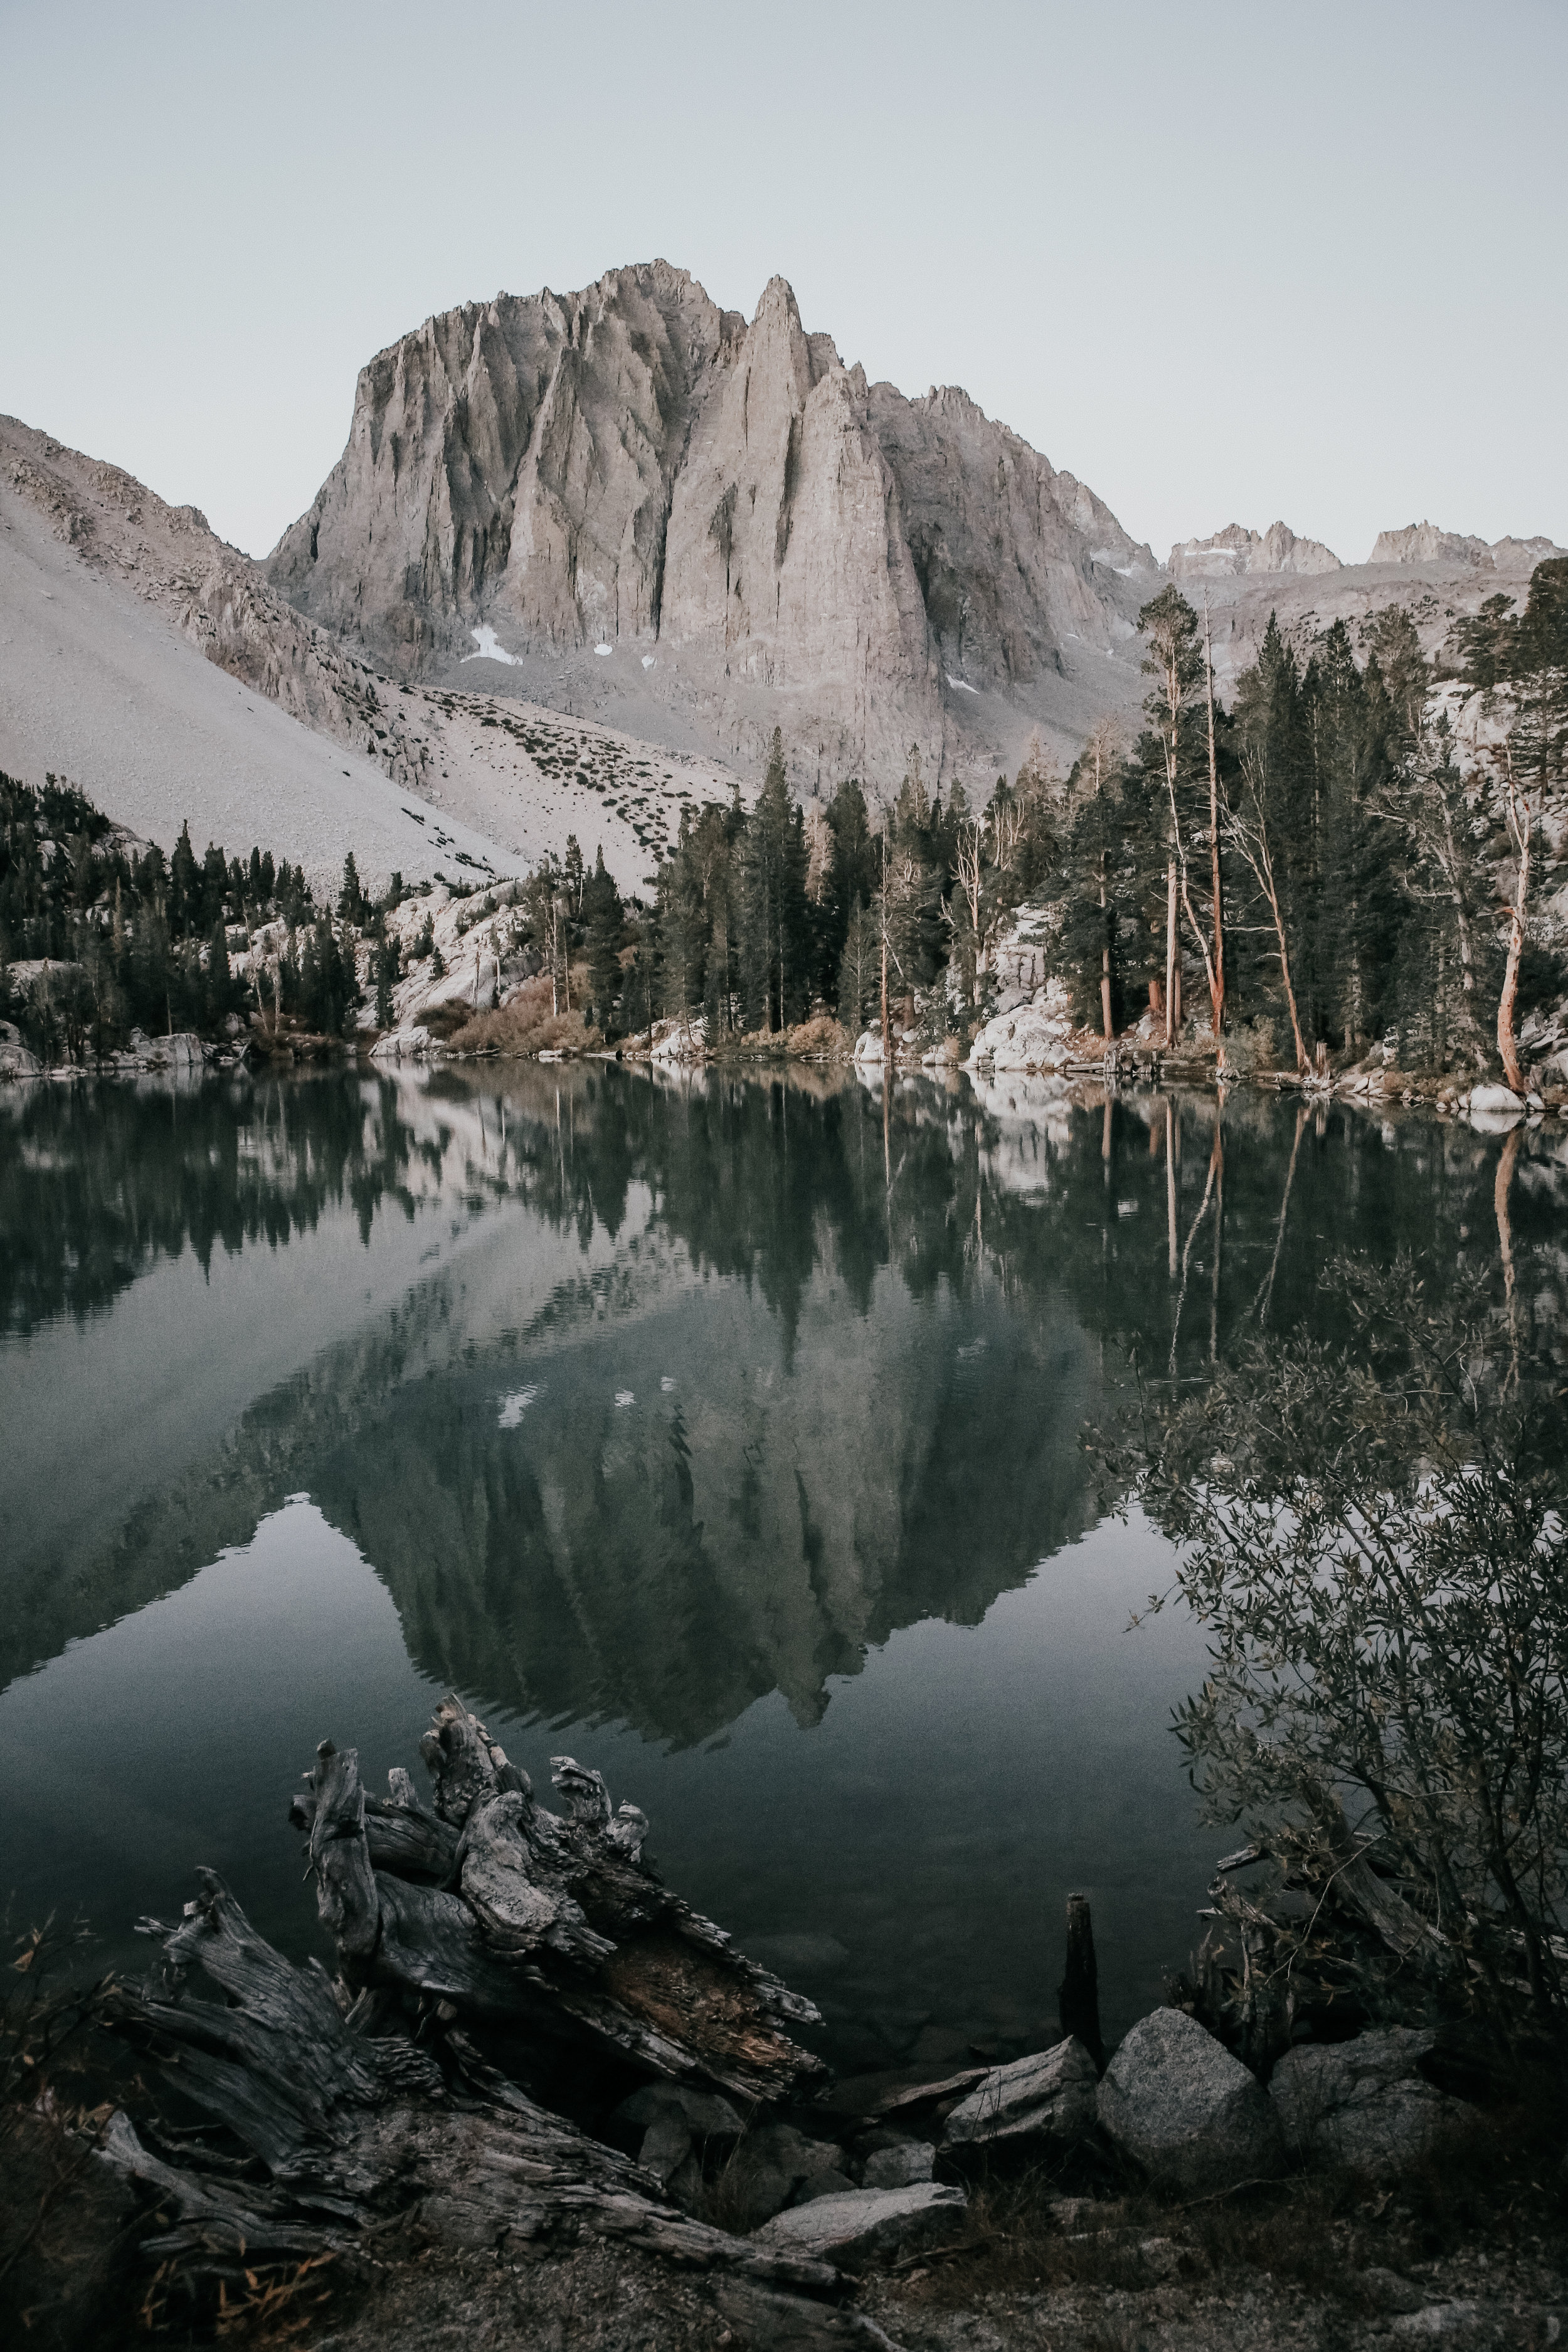 Morning views in the Sierras